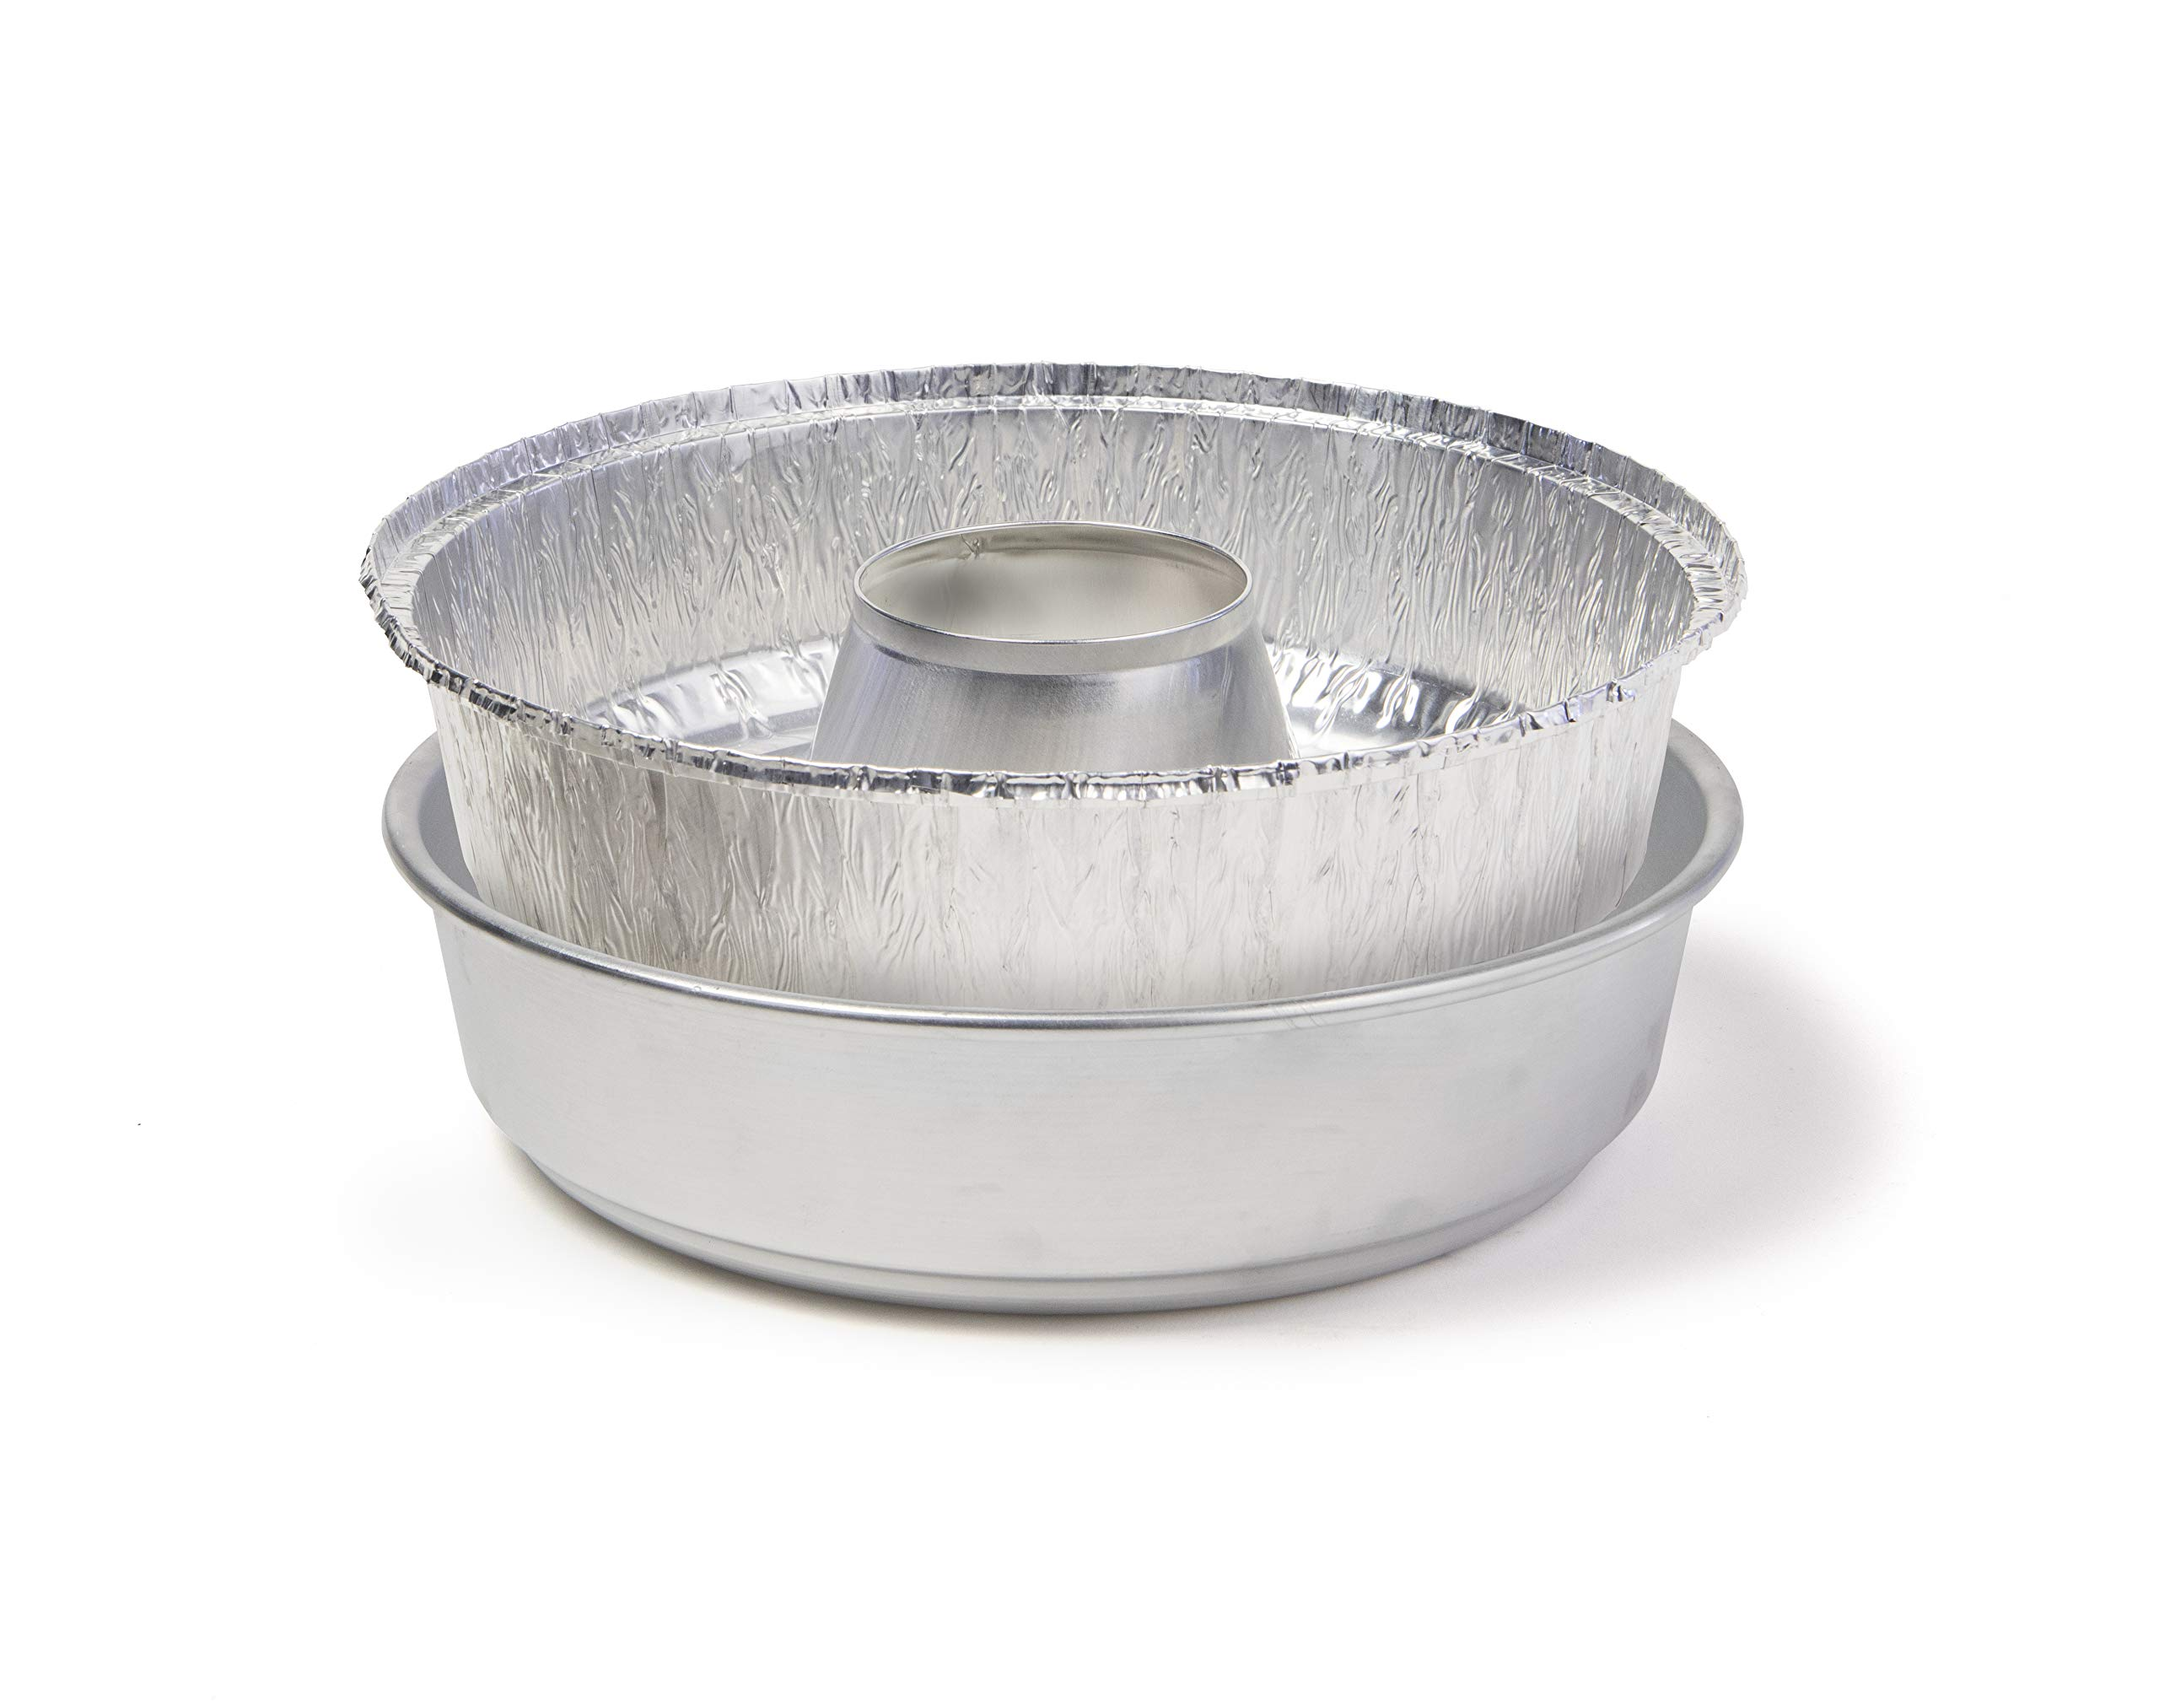 Omnia Oven Foil Dish 5-Pack Plus Custom Parchmnet Paper Rounds